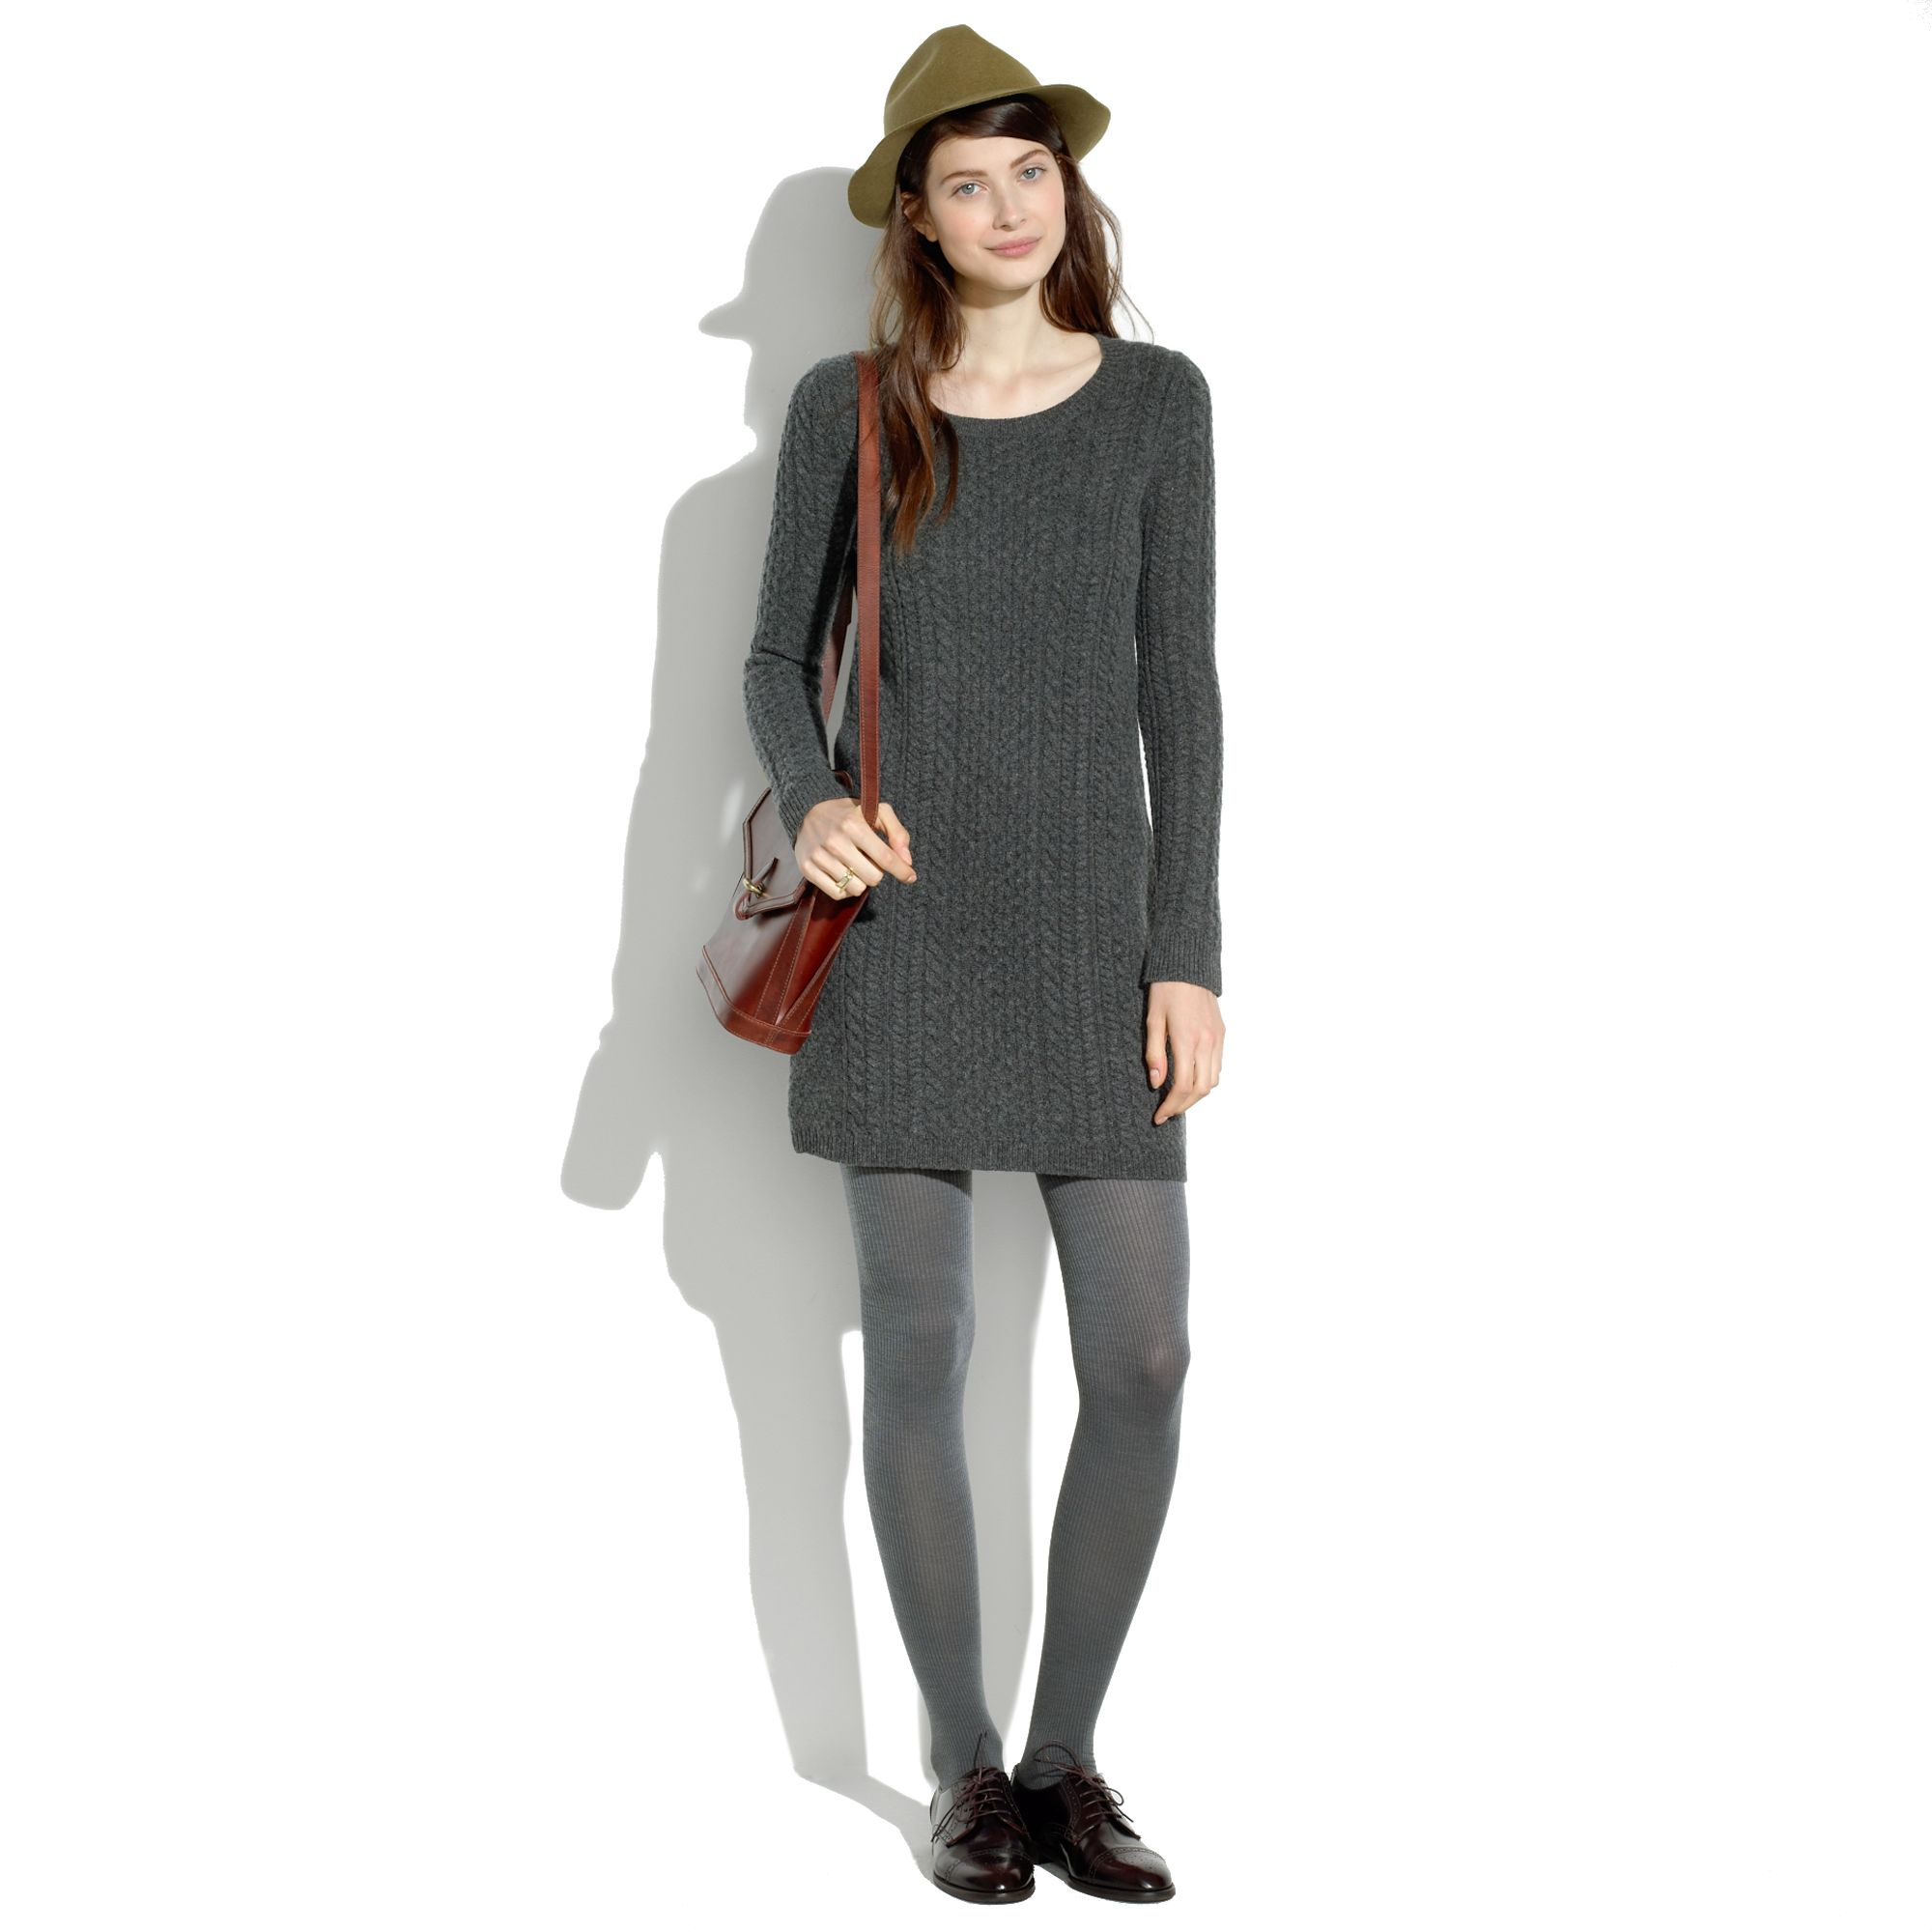 afb0076dc19 Lyst - Madewell Merino Sweaterdress in Gray